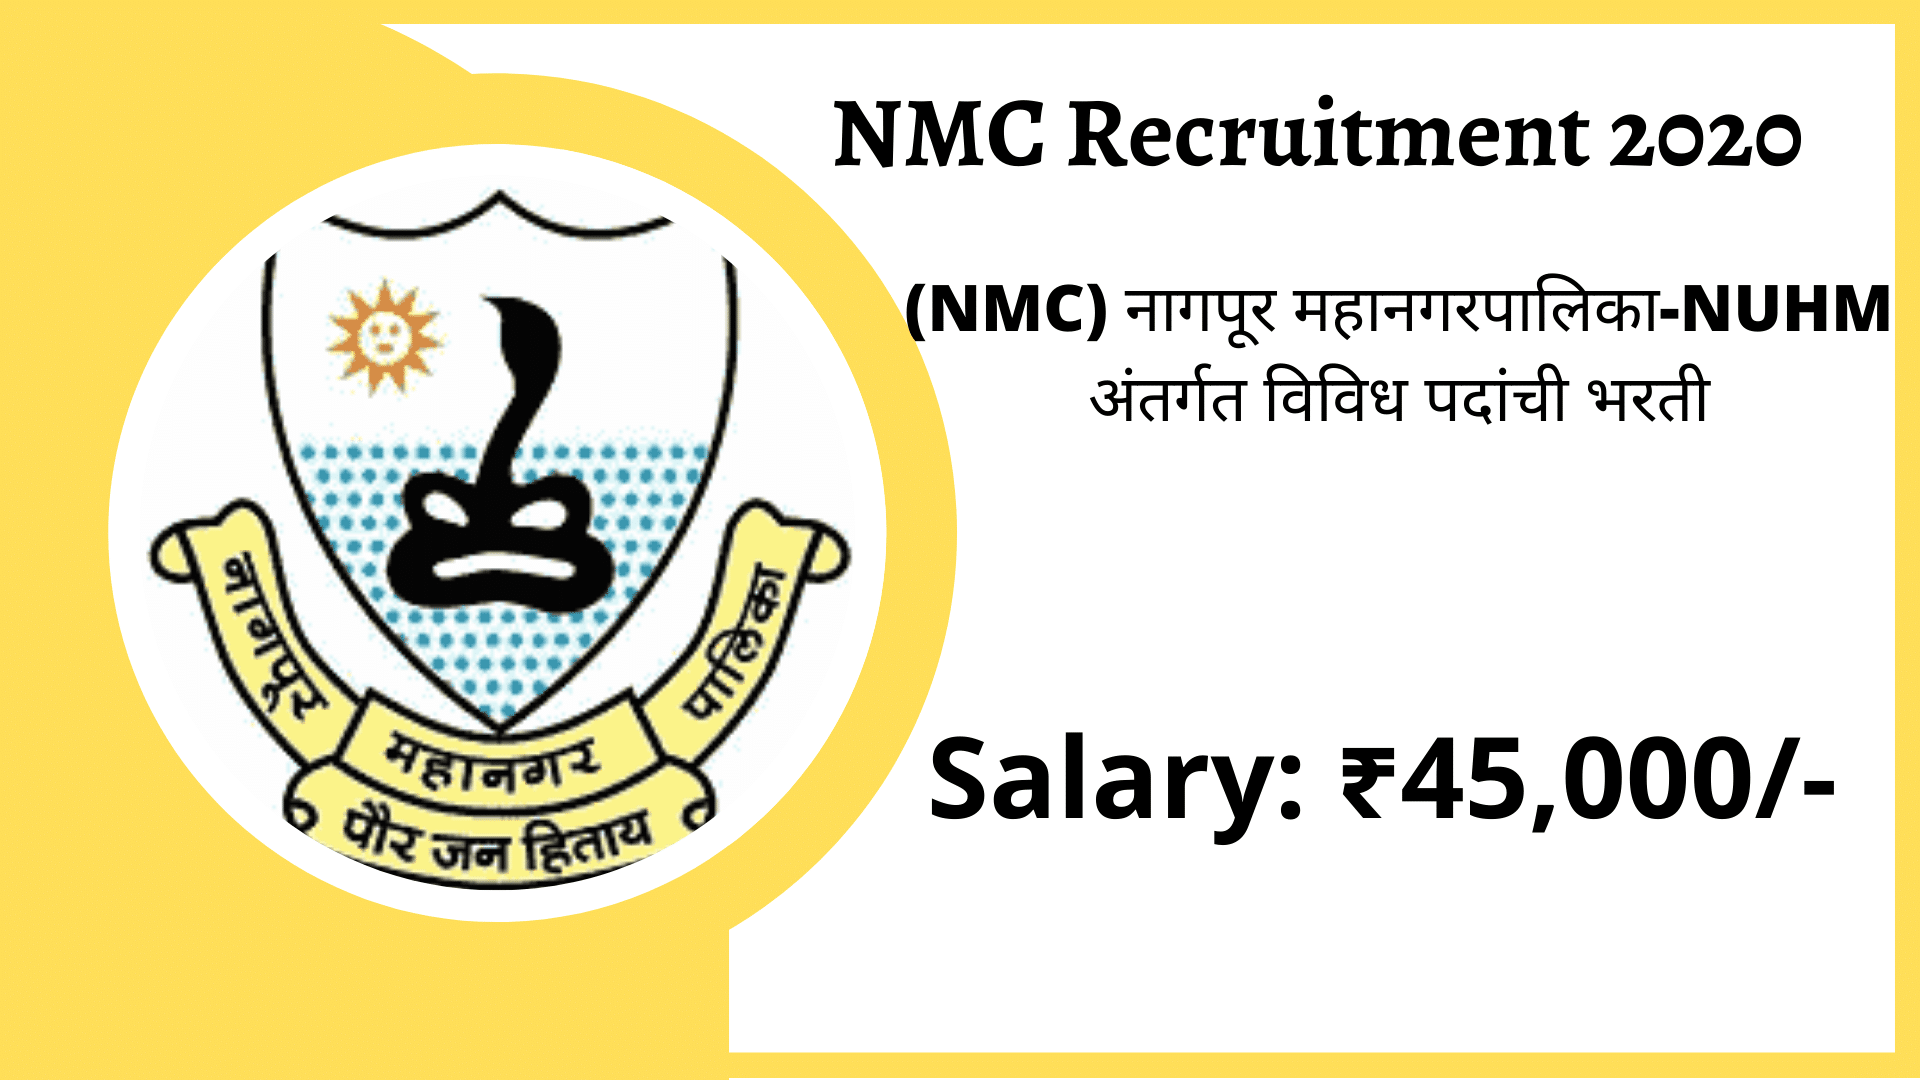 NMC Recruitment 2020